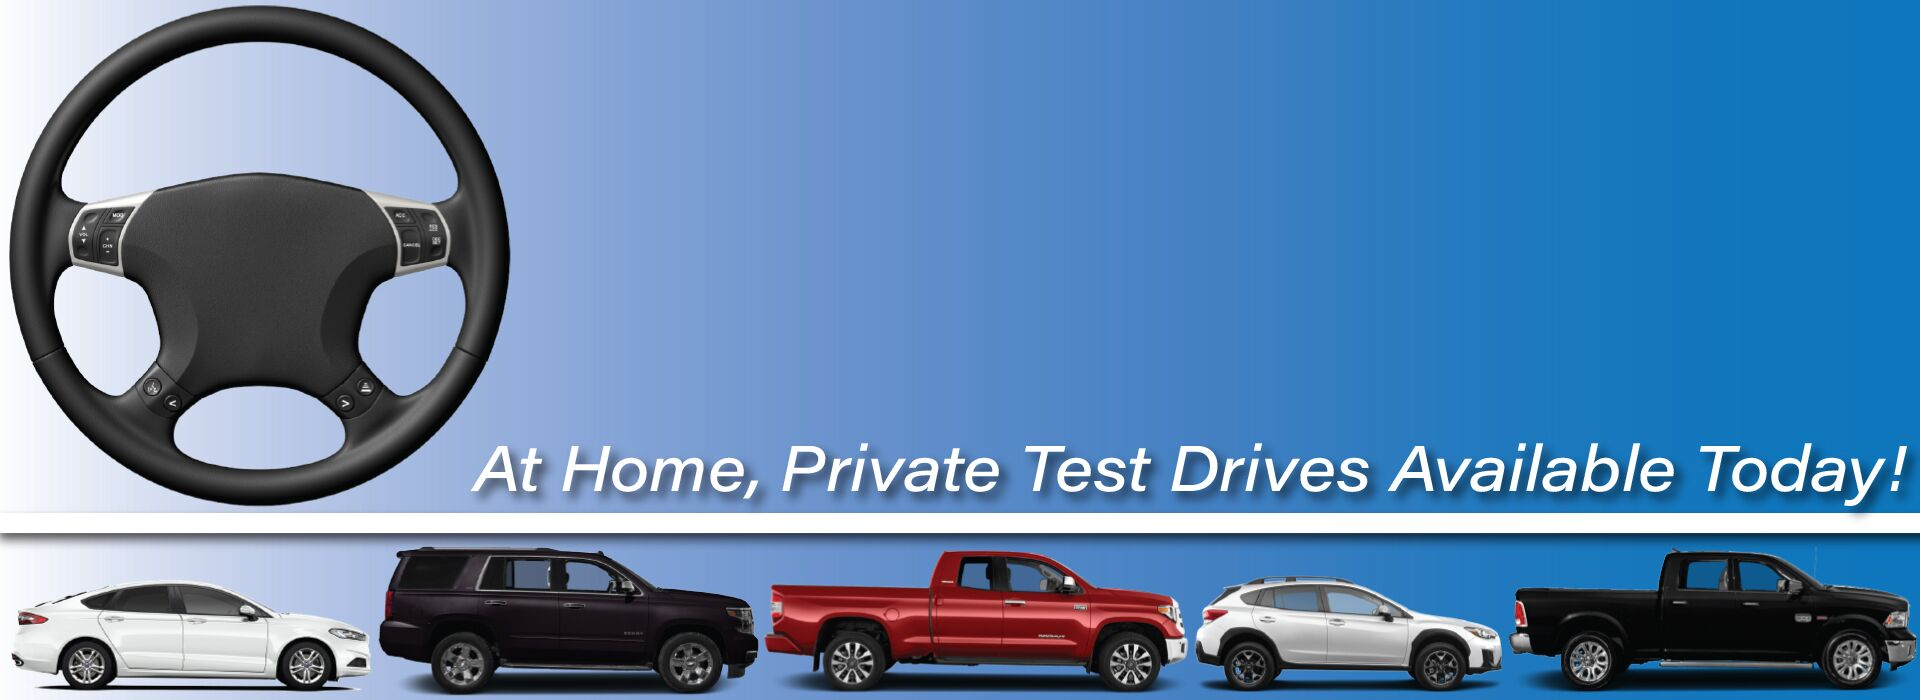 Private, In-Home Test Drives